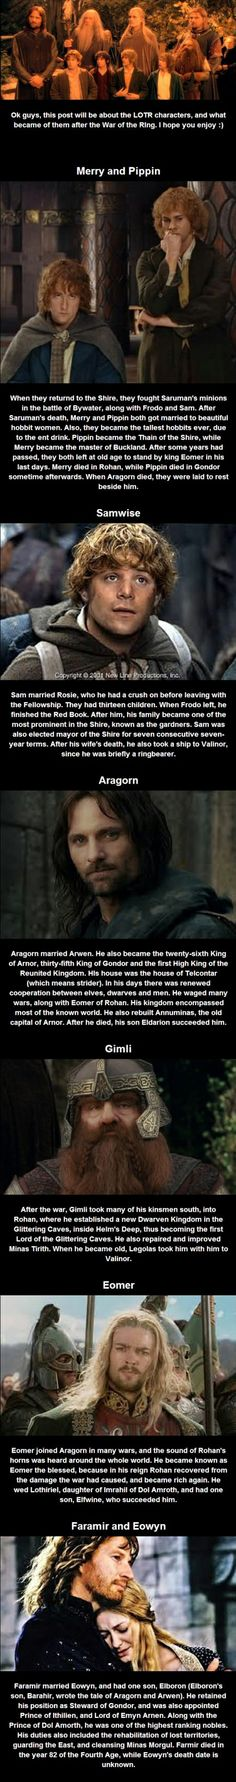 What happened after Lord of the Rings